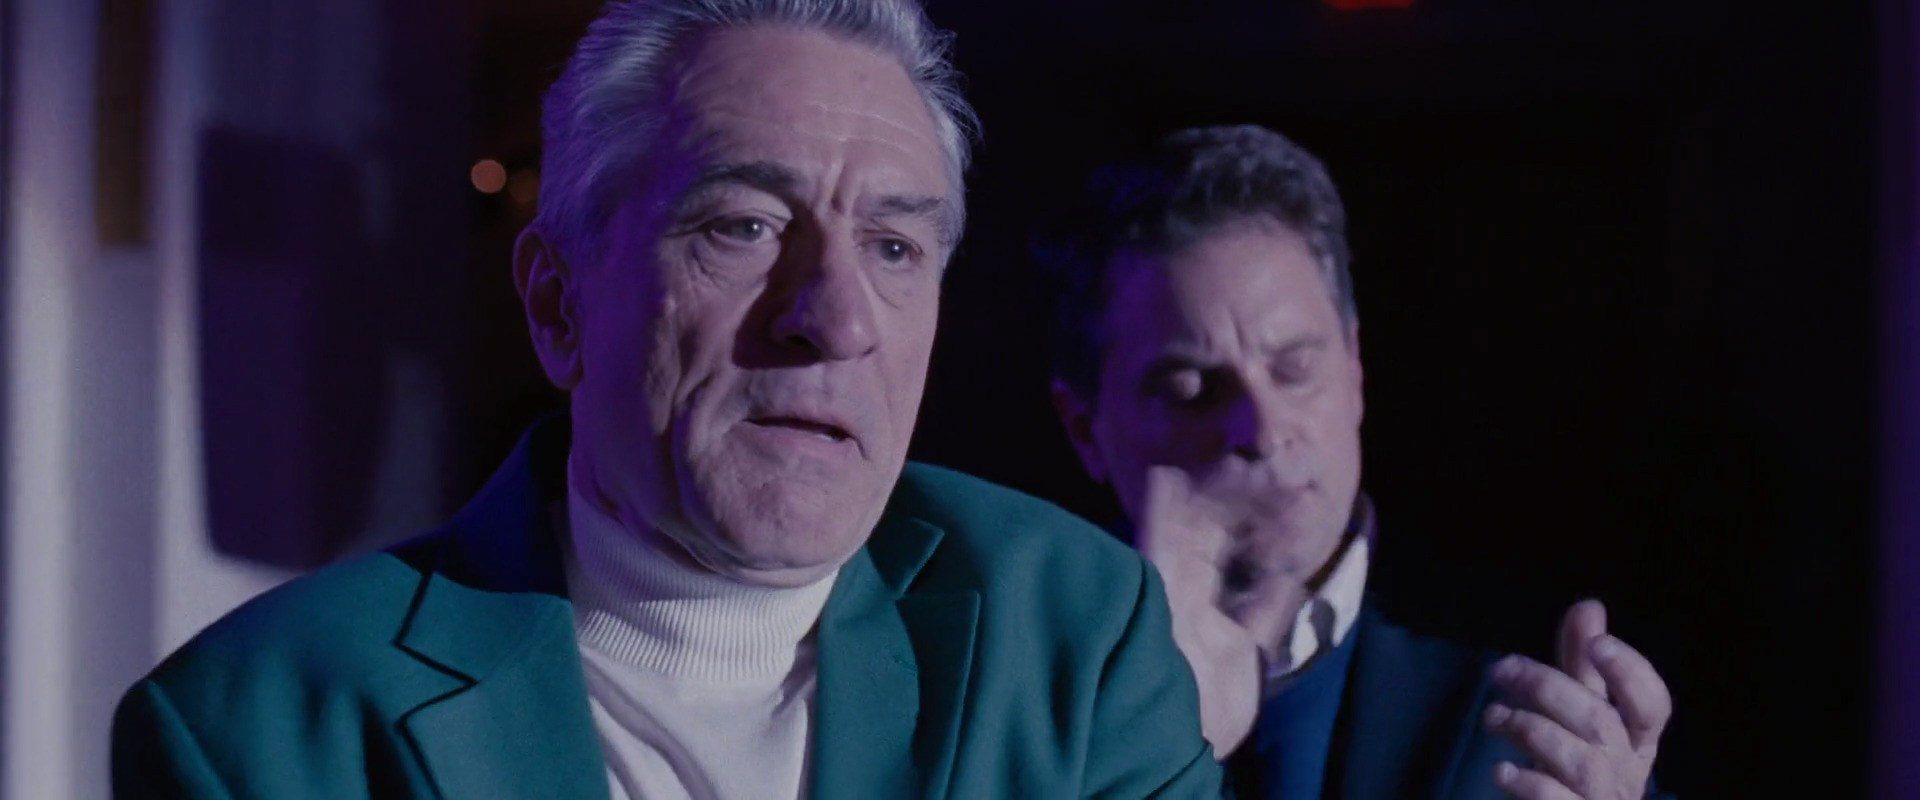 Robert De Niro Injures His Leg While Filming Scorcese's 'Killers on the Flower Moon'